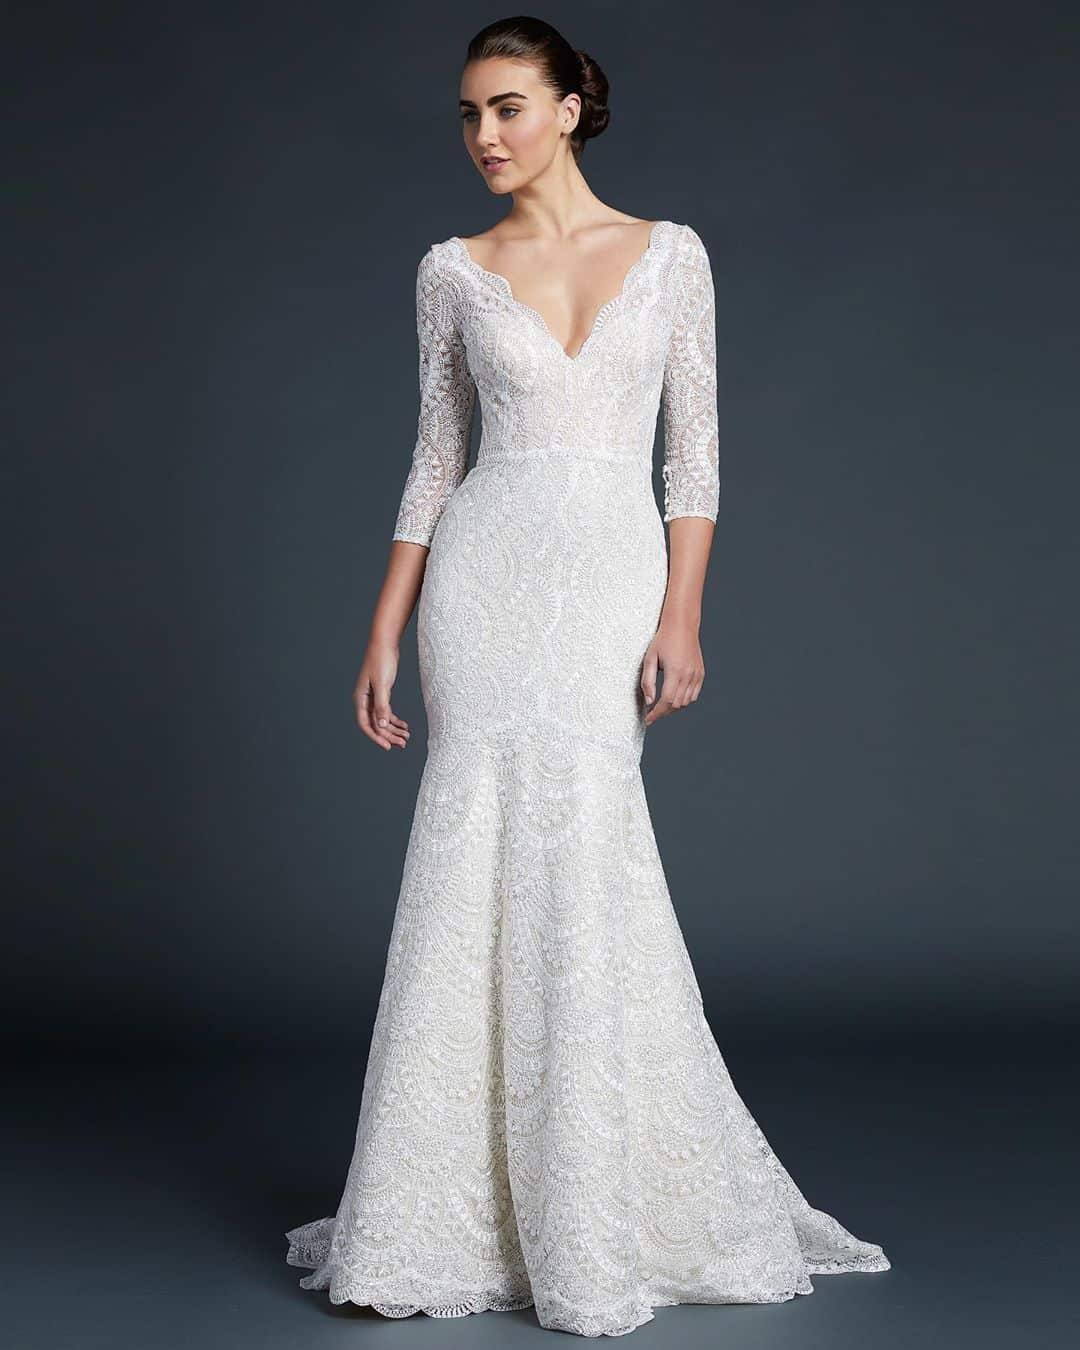 Traditional Meets Contemporary In Anne Barges Bridal Designs